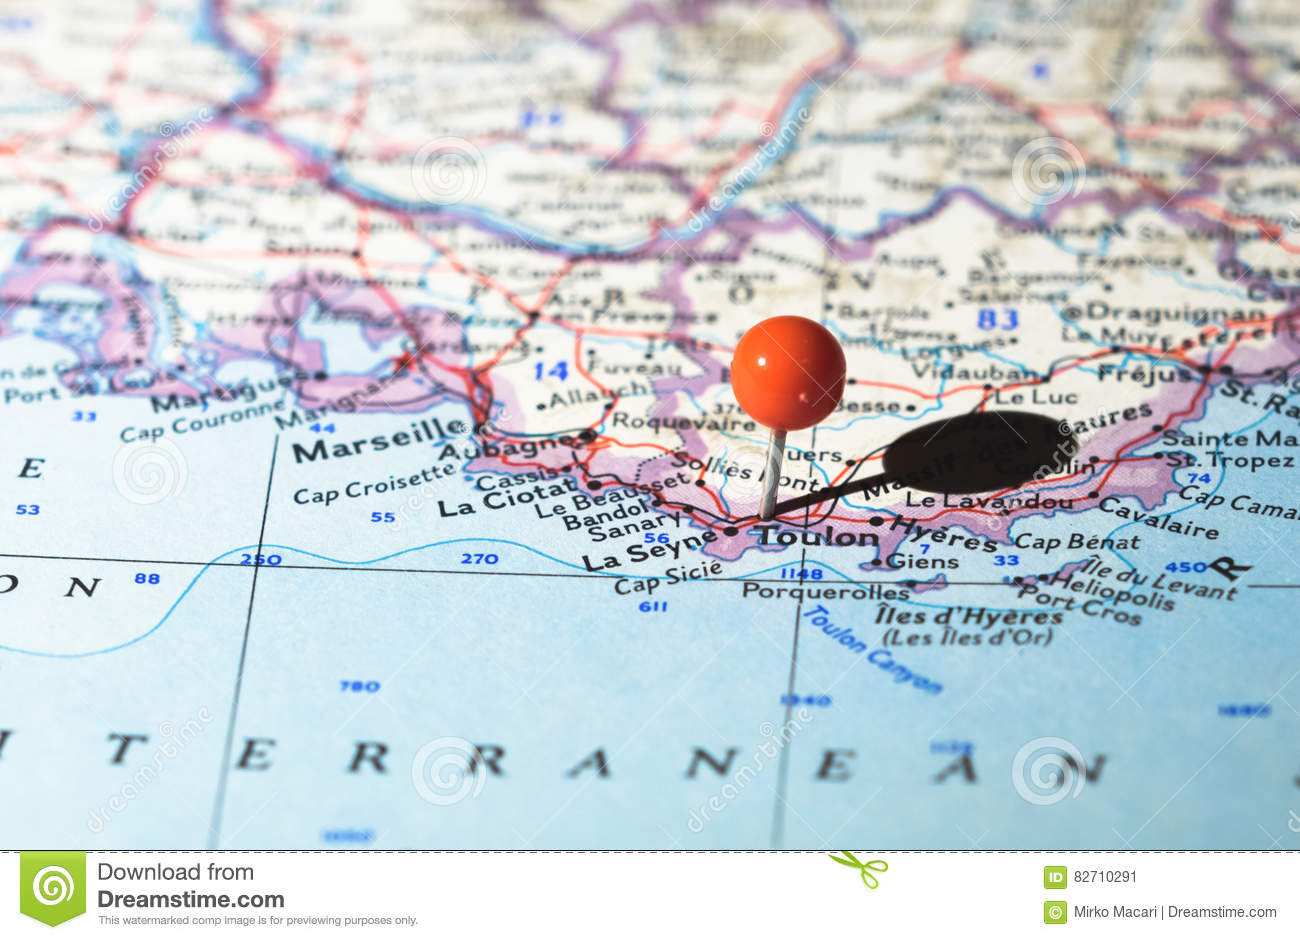 Toulon Location Indicated On The Route Map Stock Image ...